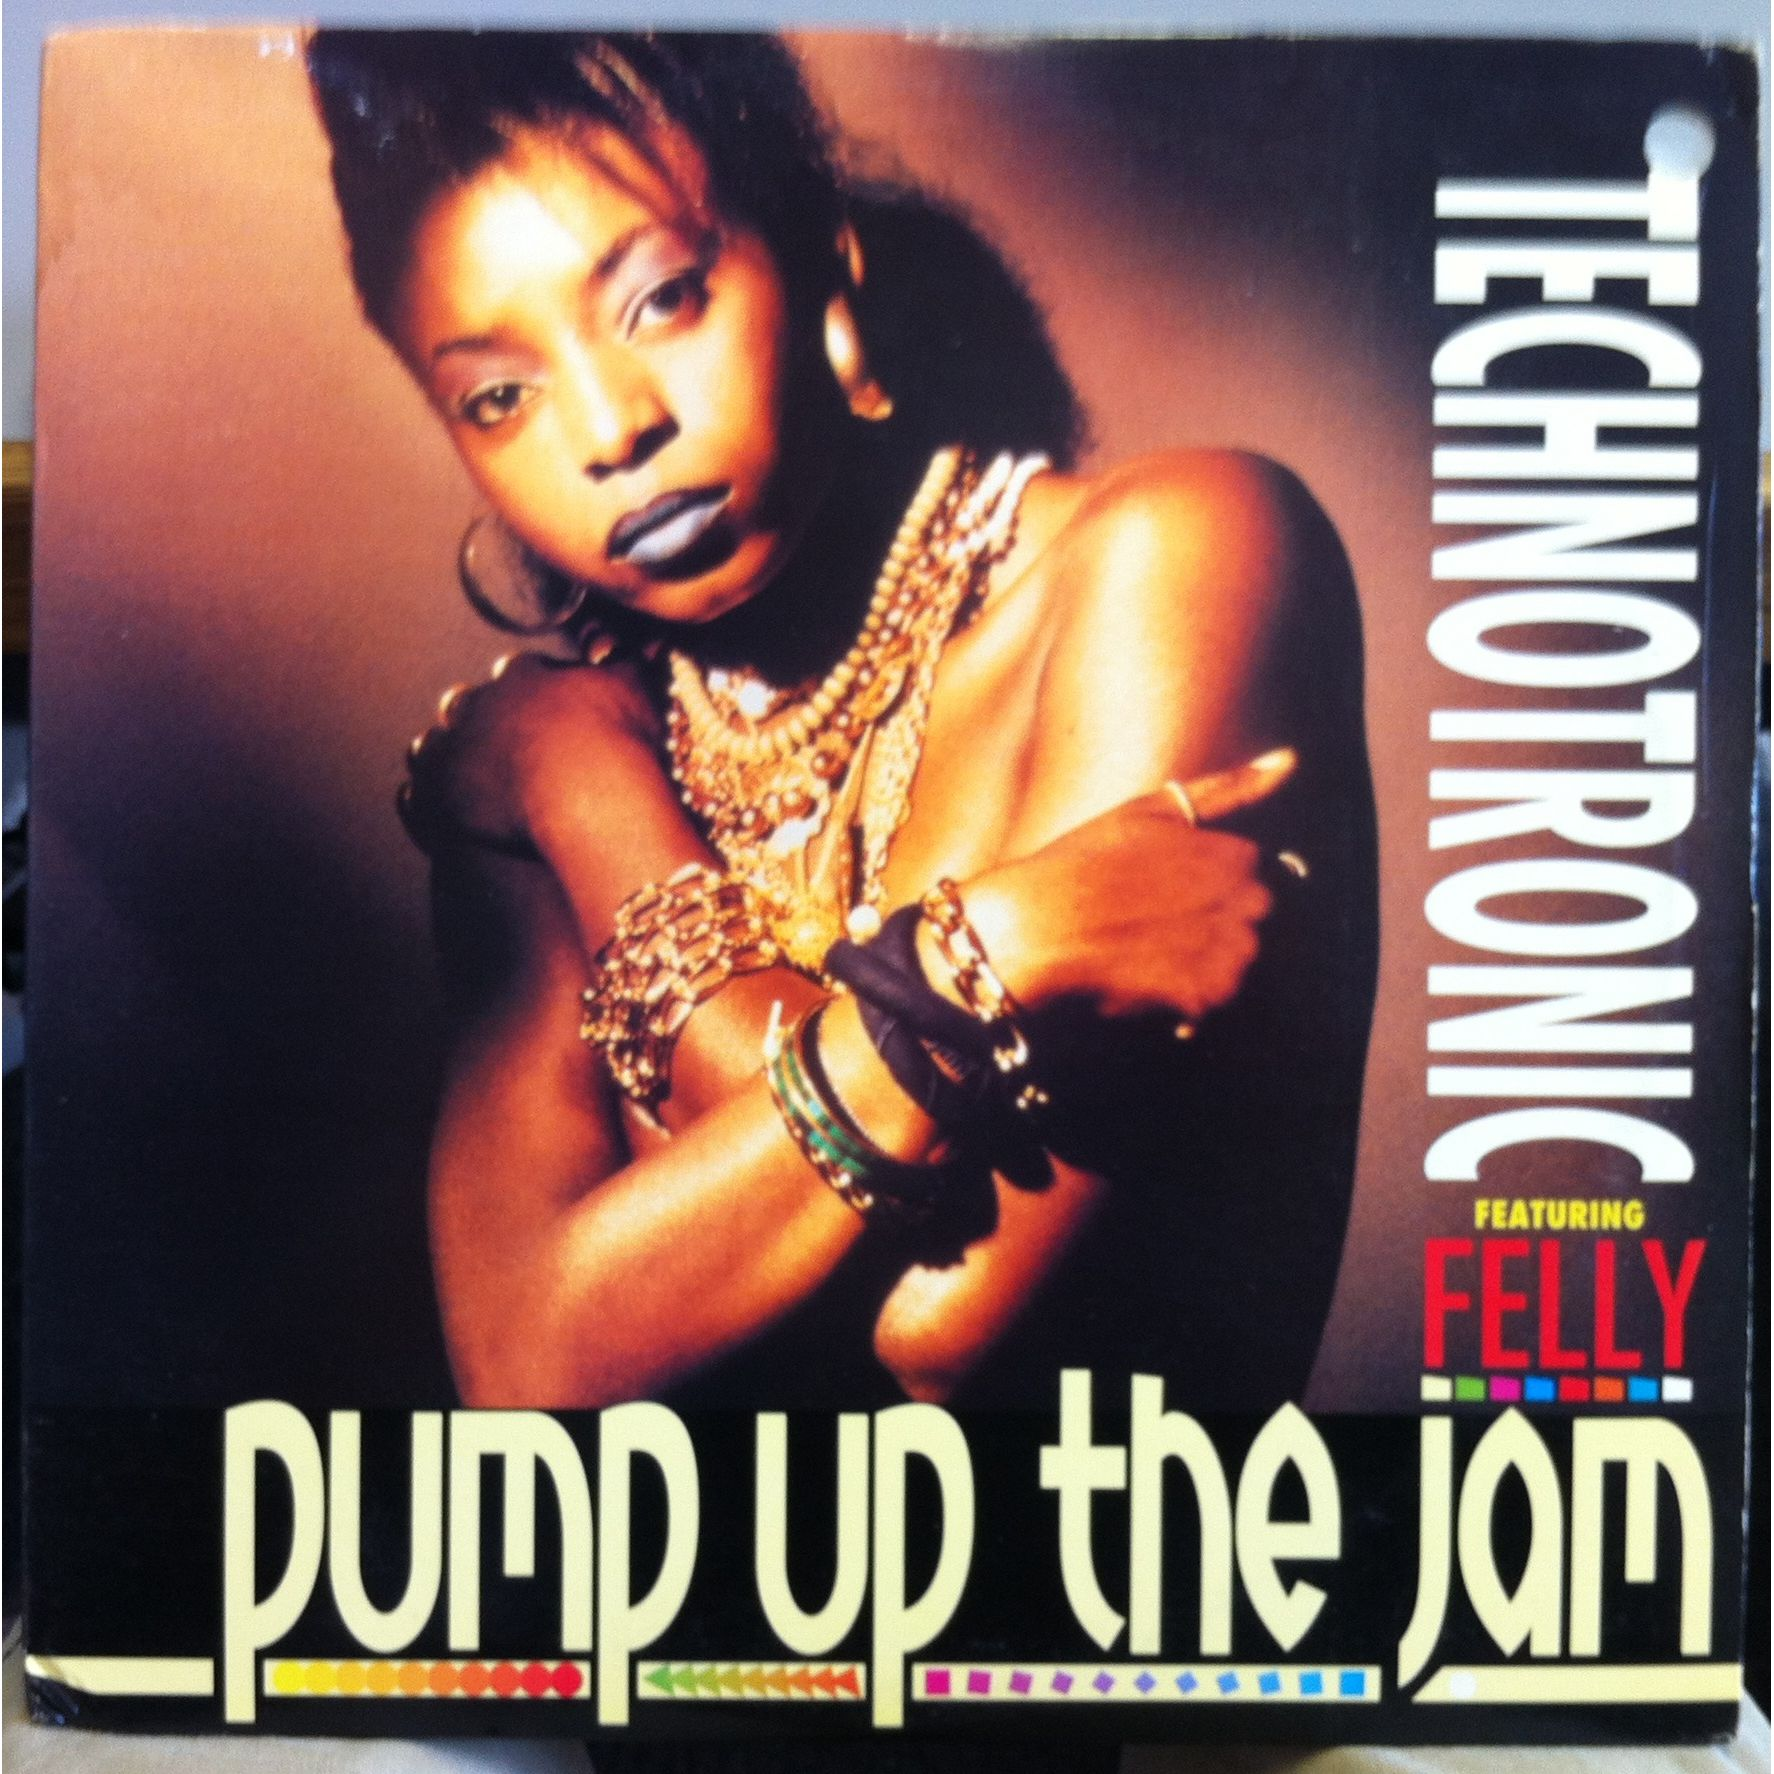 Pump-Up-The-Jam-Limited-Edition-cover